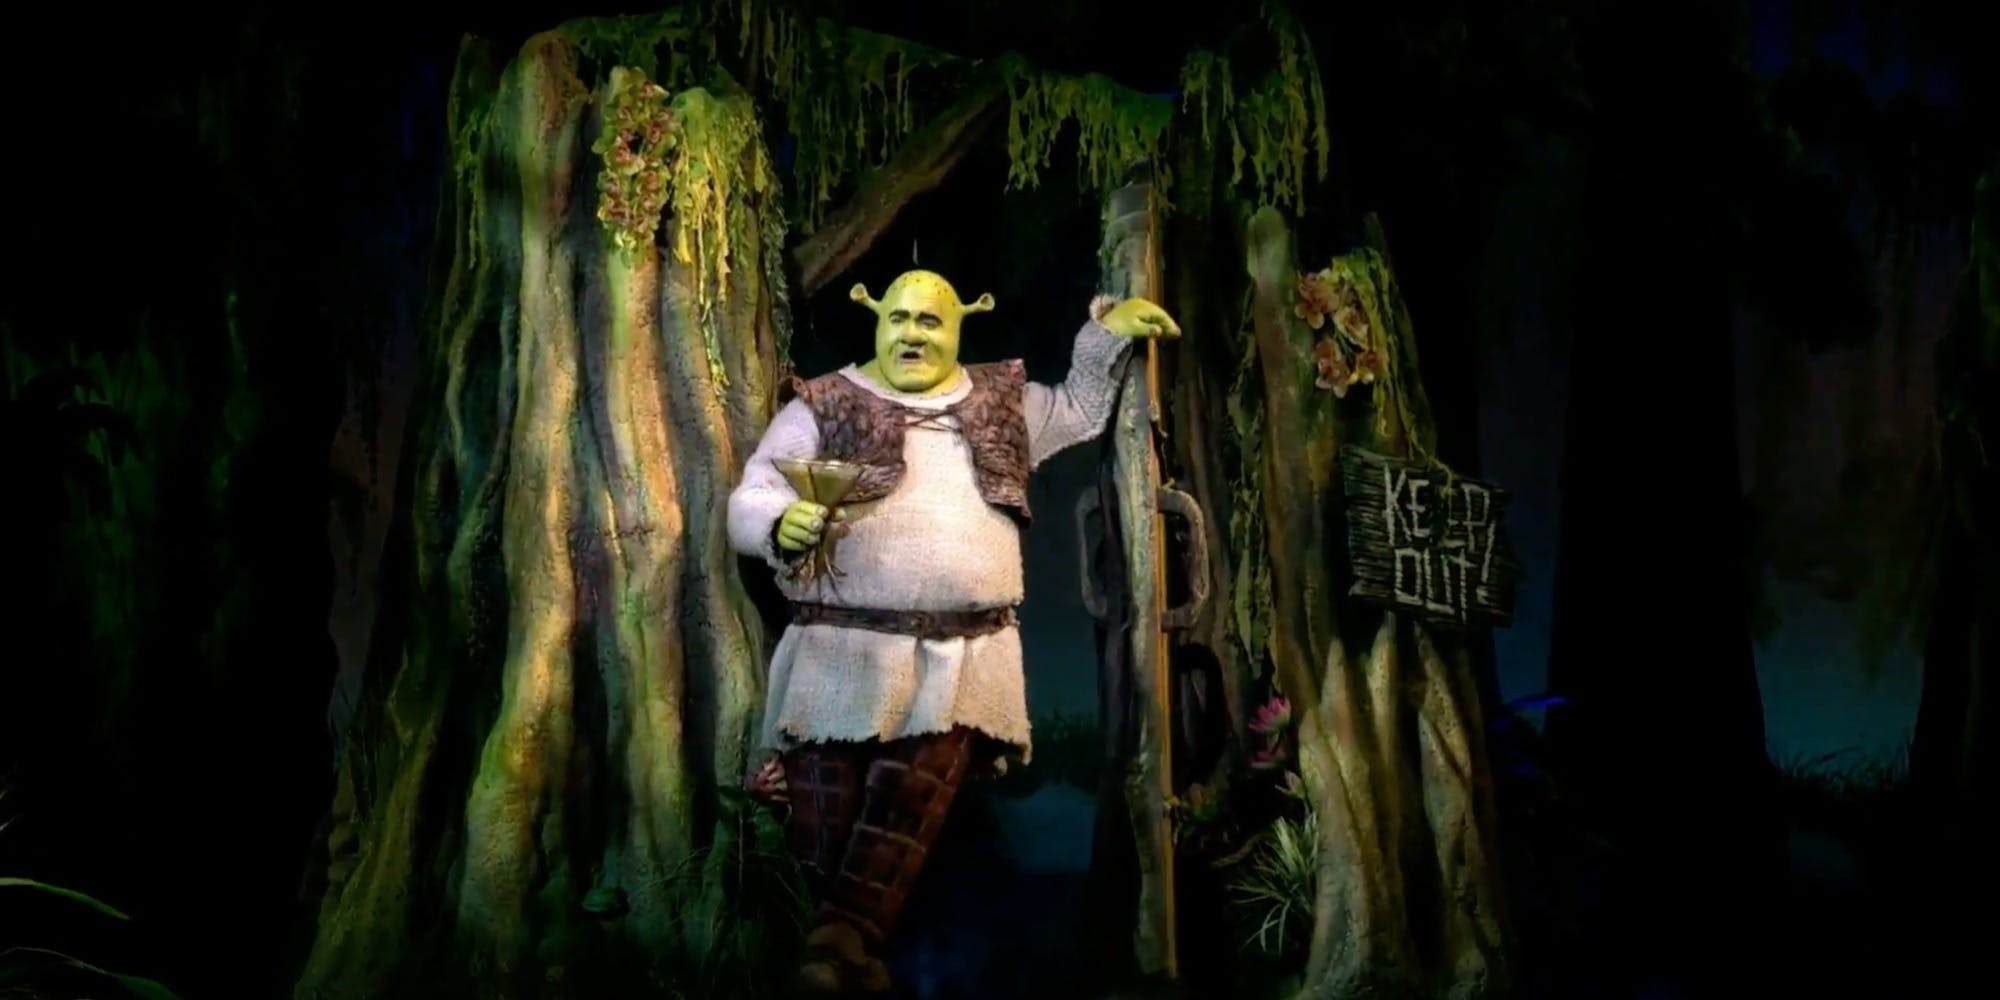 A still from Shrek the Musical, a musical based on the 2001 animated film.